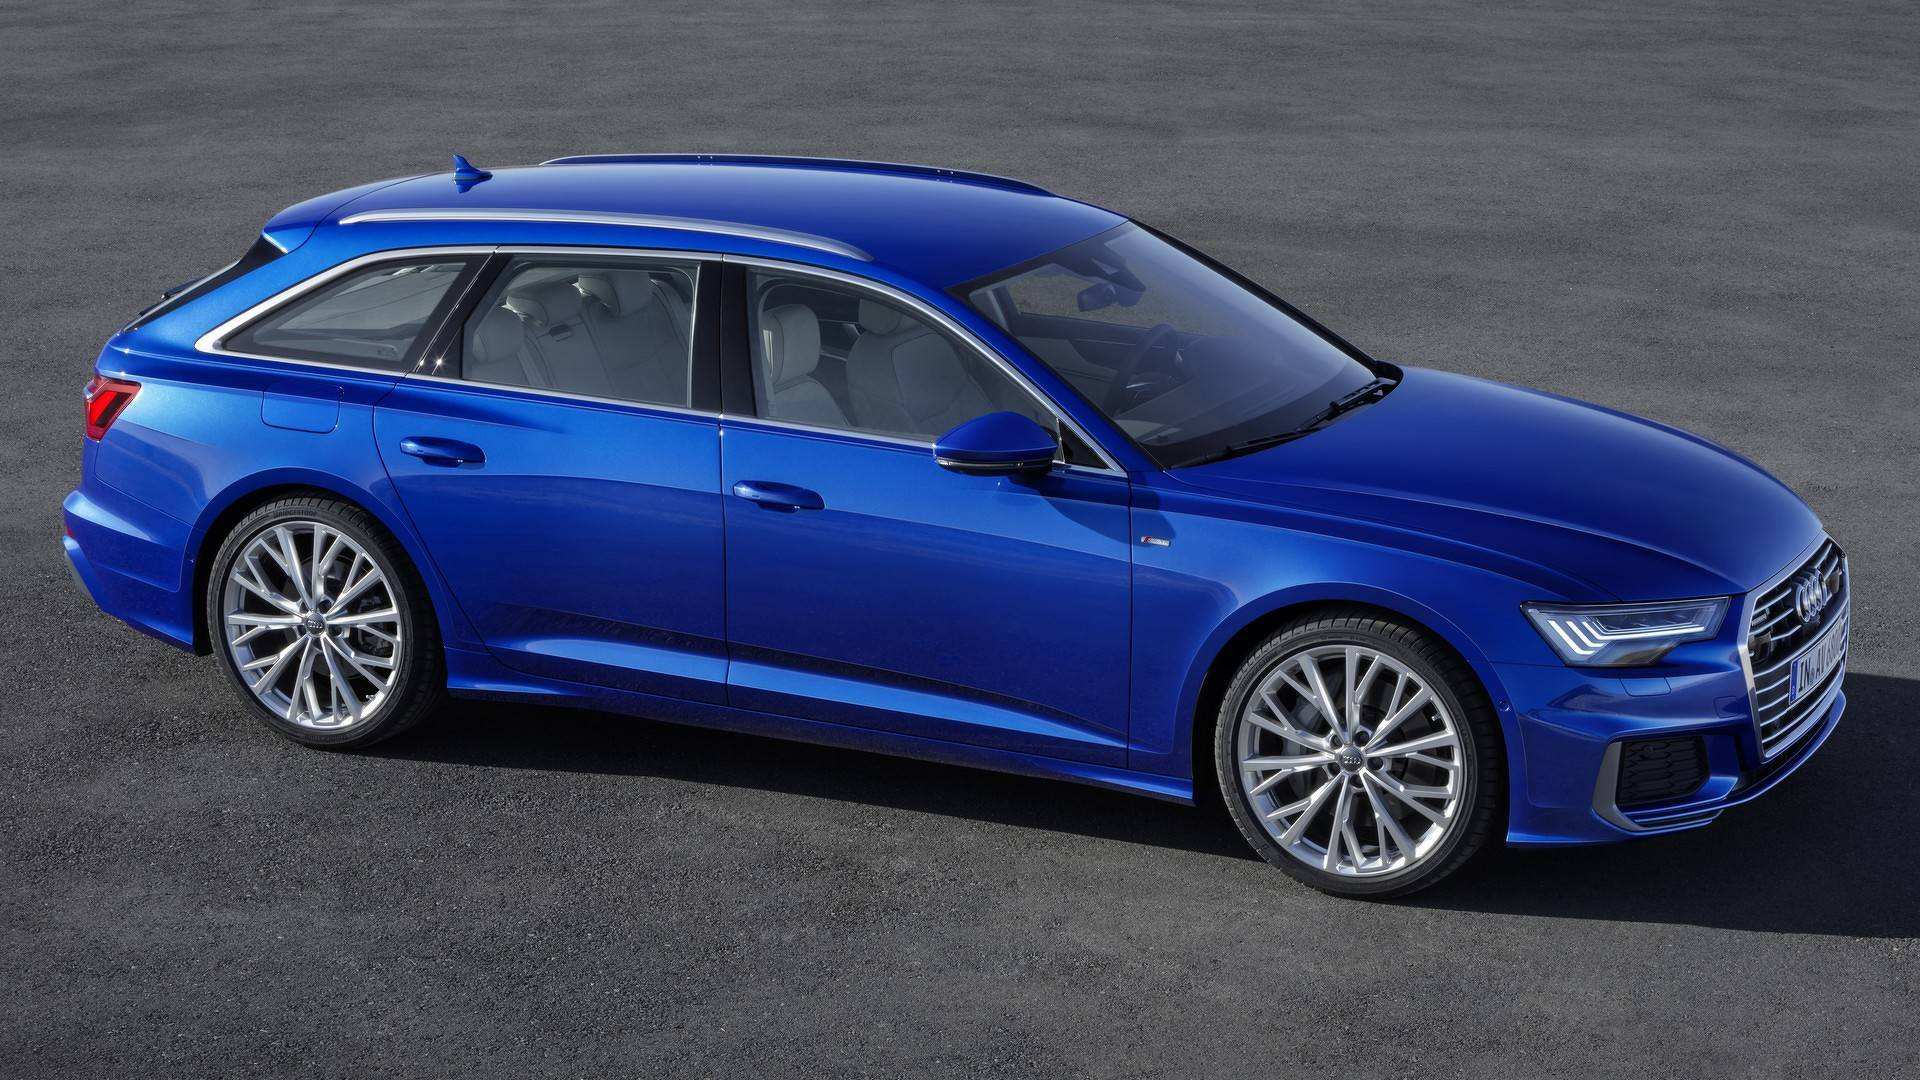 66 Concept of 2019 Audi Wagon Usa Pictures for 2019 Audi Wagon Usa